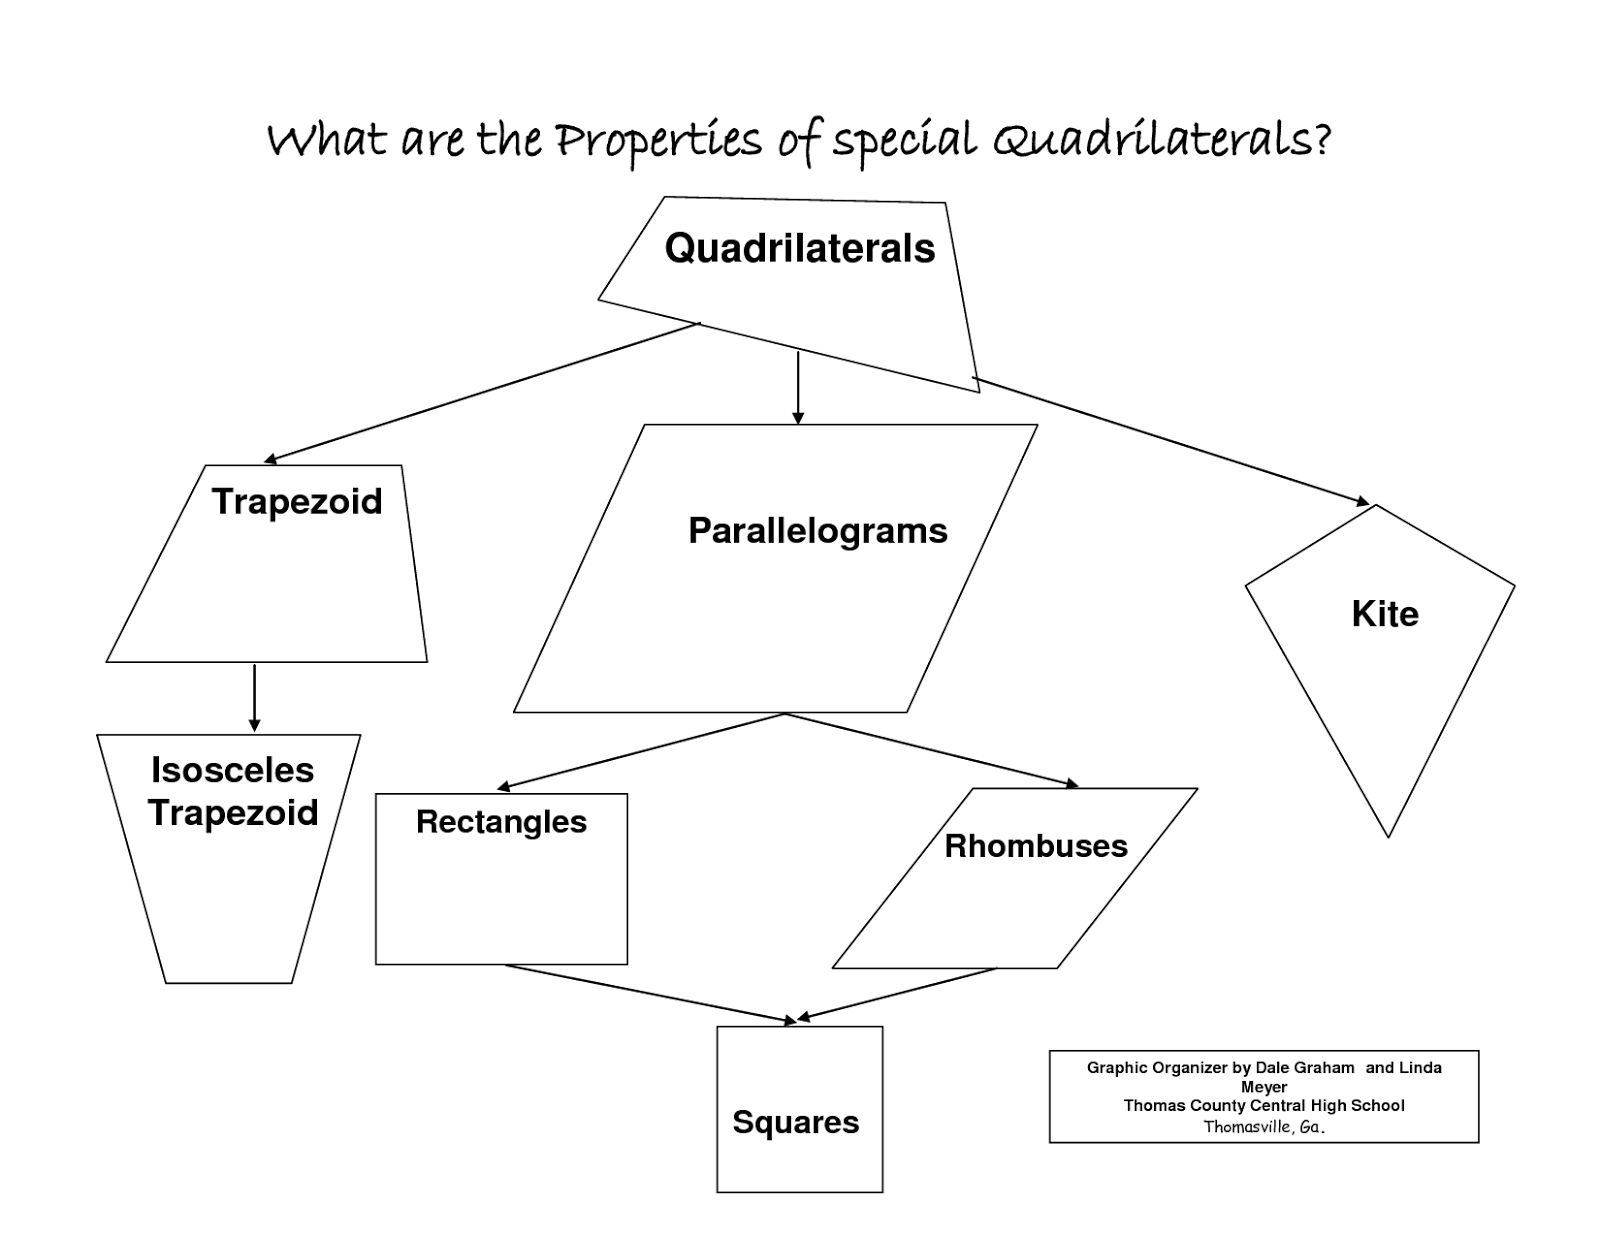 classifying quadrilaterals graphic organizer images galleries with a bite. Black Bedroom Furniture Sets. Home Design Ideas